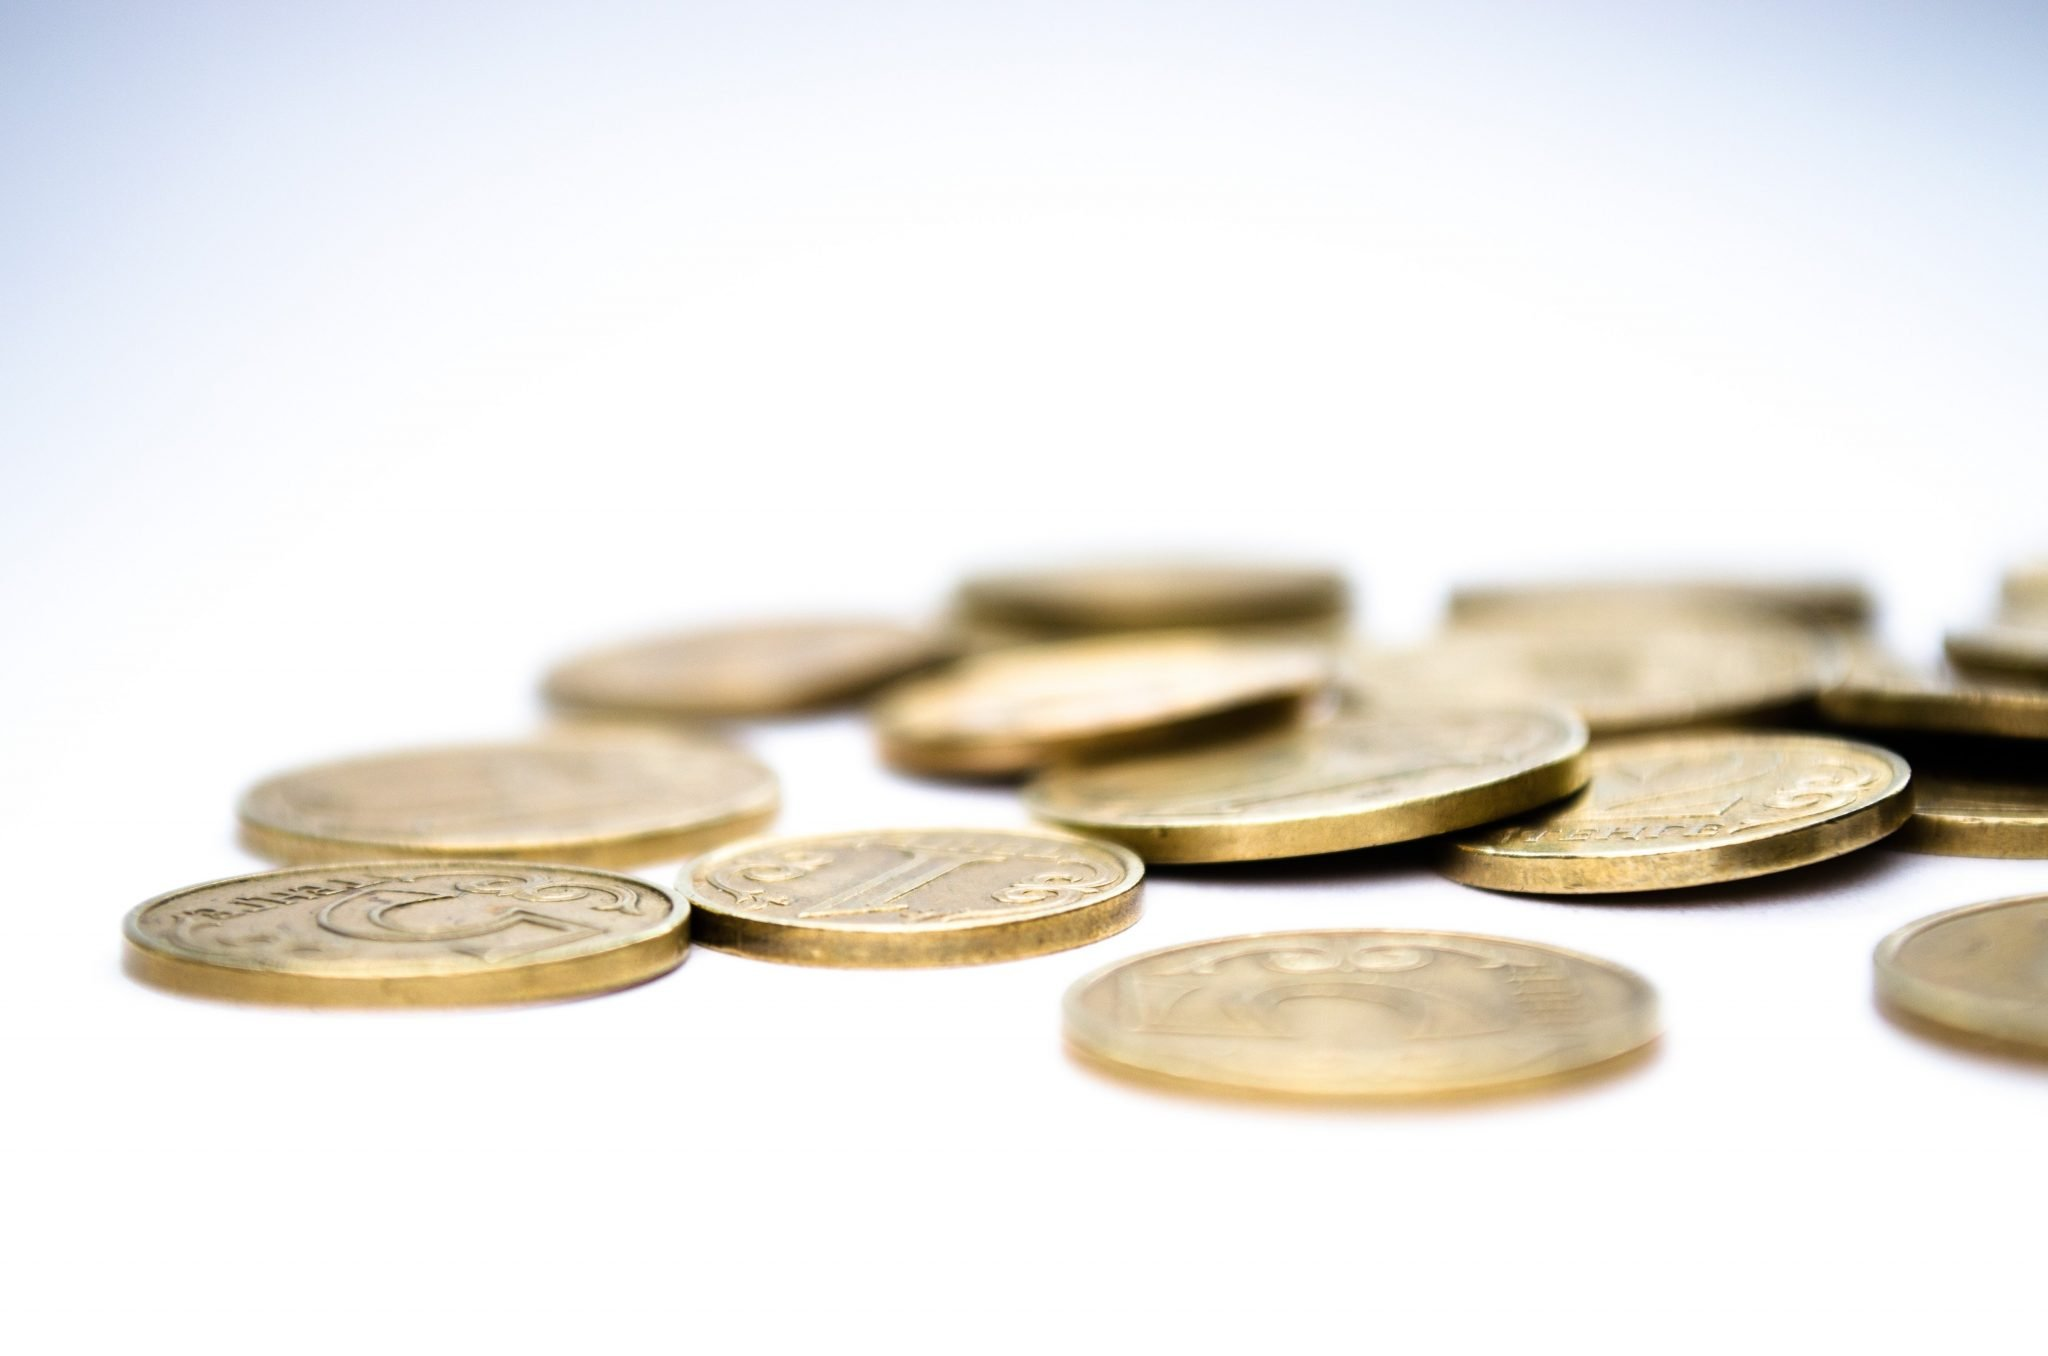 money gold coins finance - The Power of Investing in You